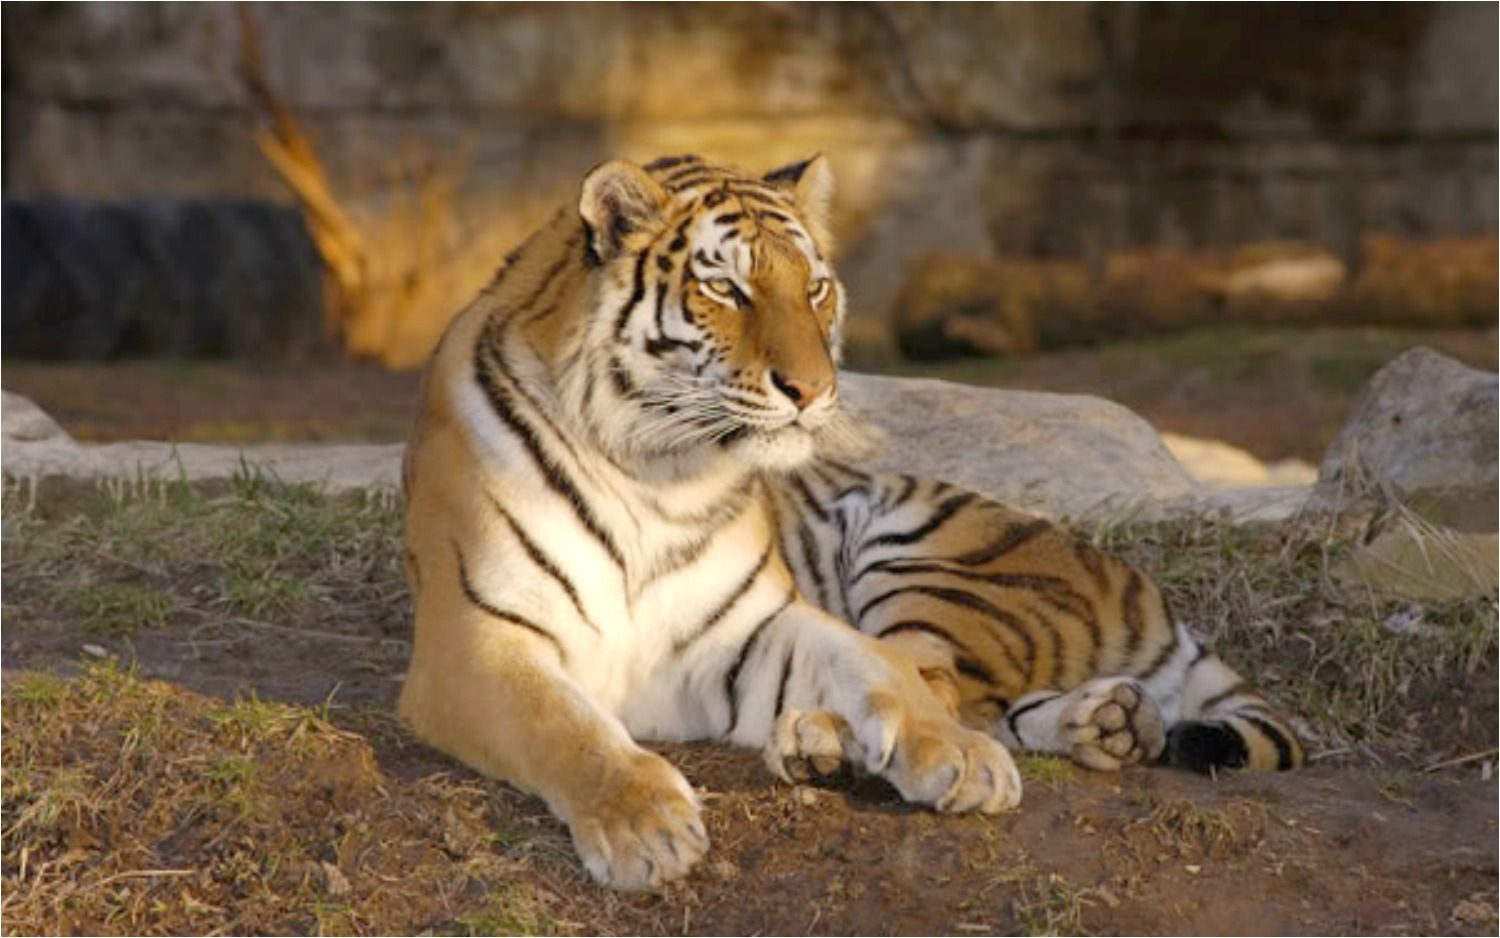 a tiger at the st louis zoo